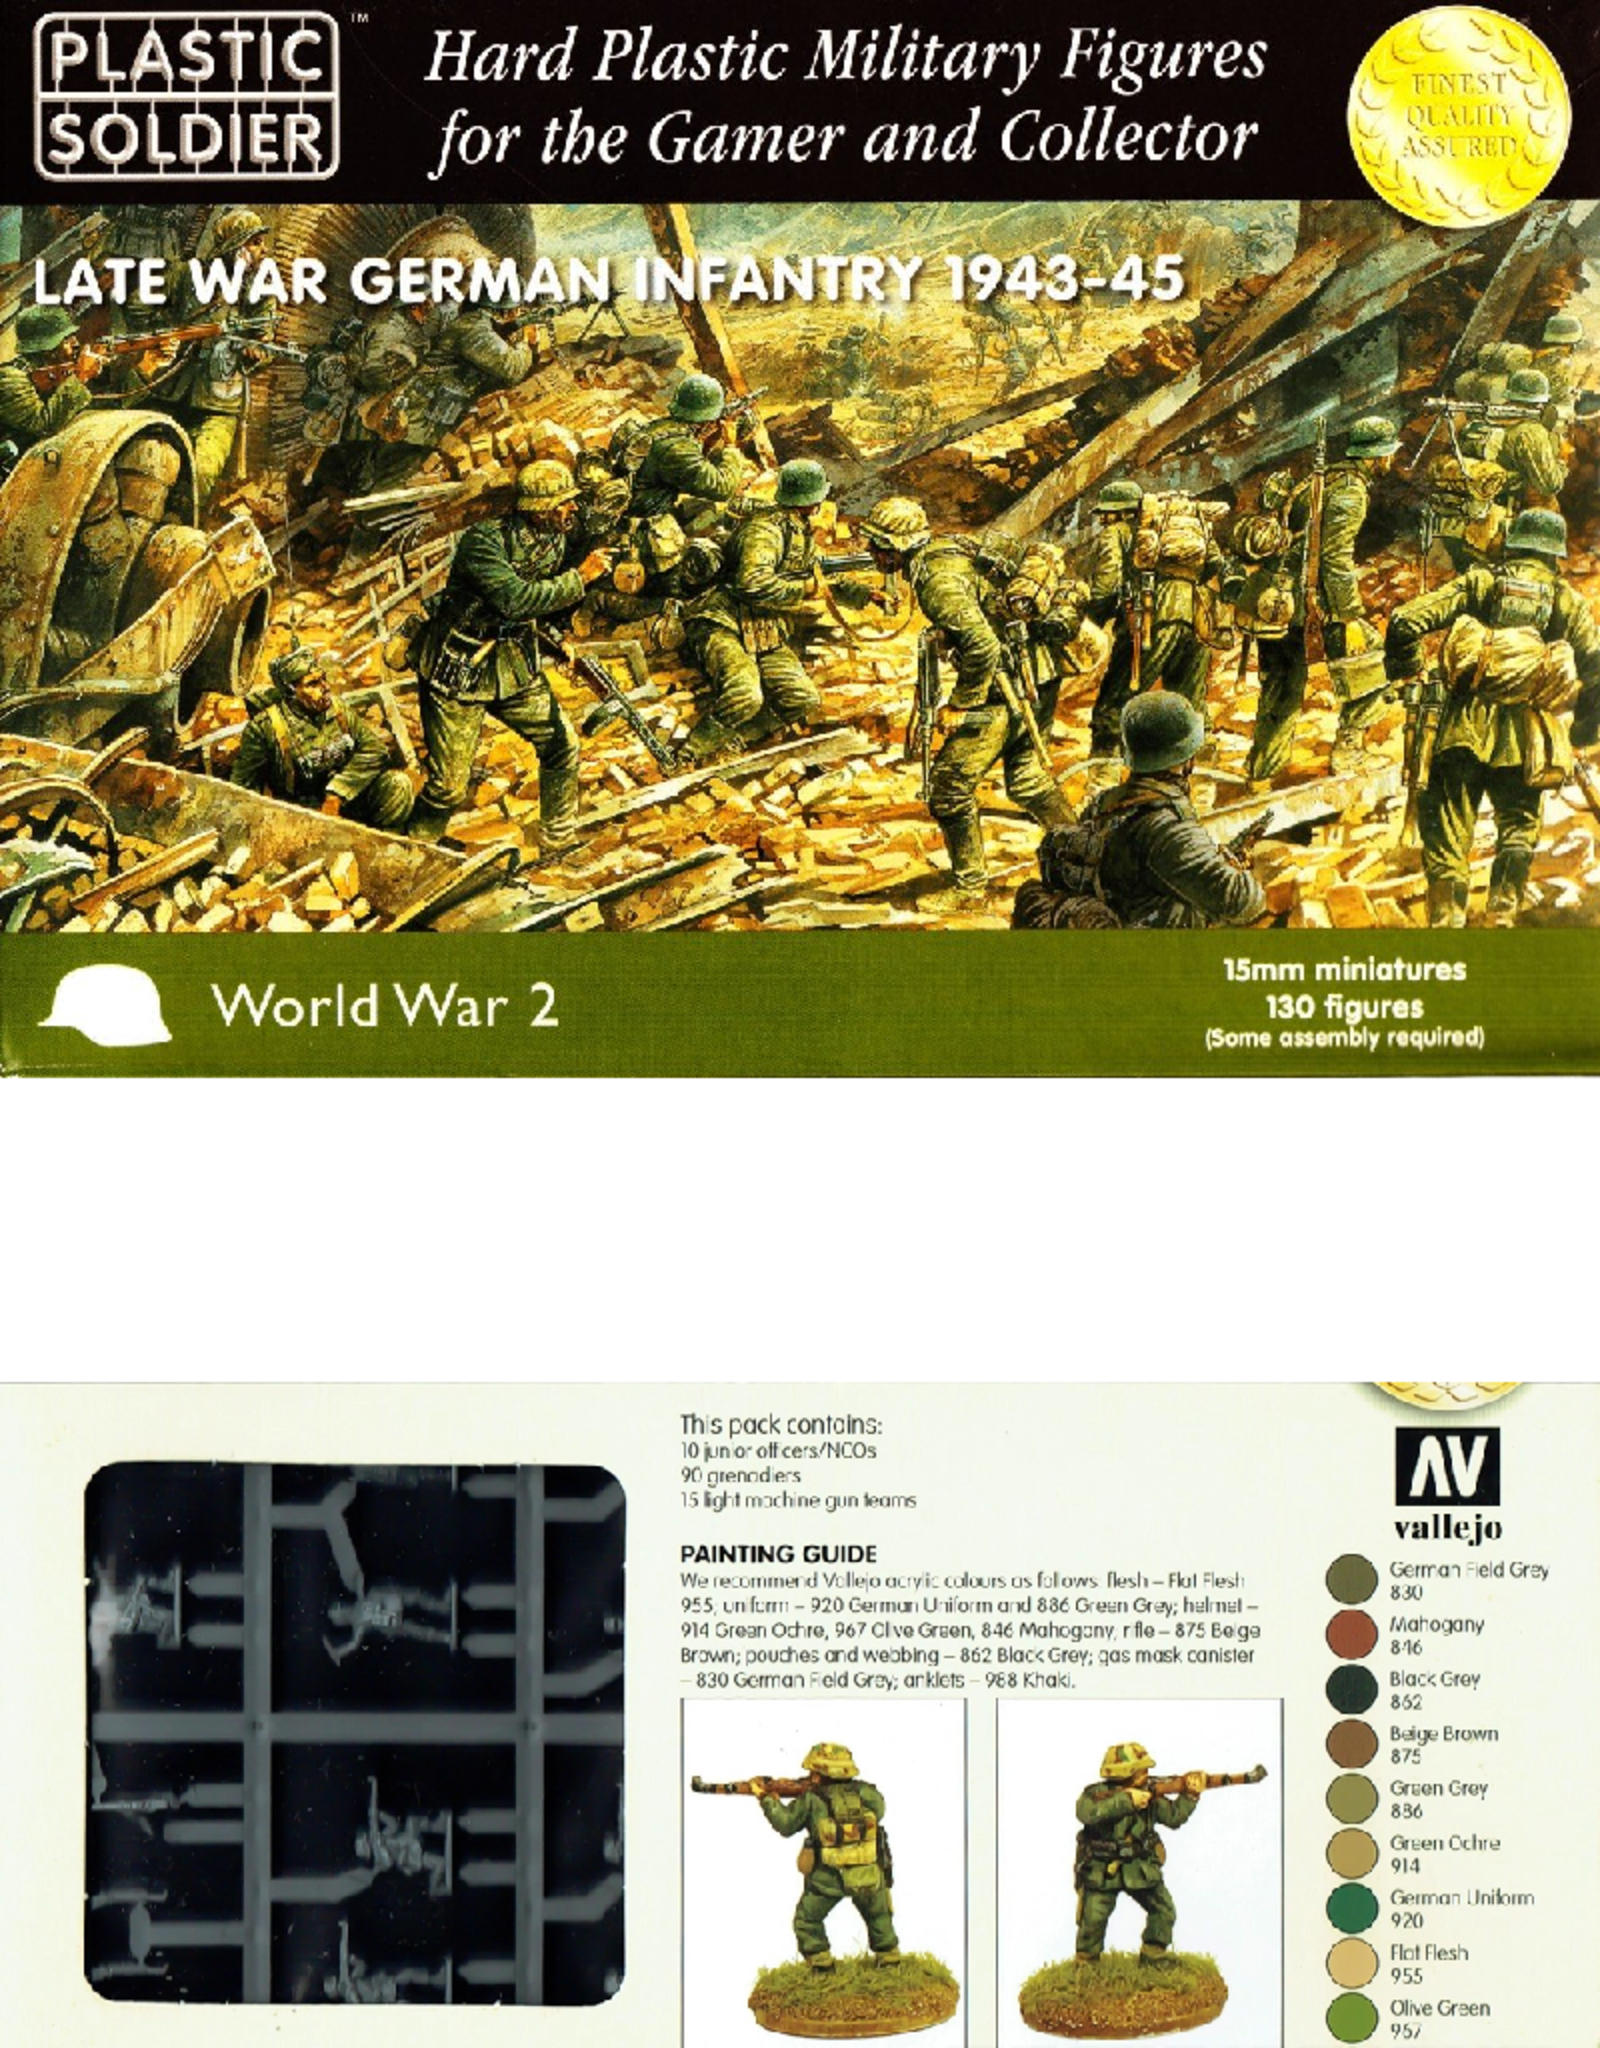 Plastic Soldier Company Late War German Infantry 1943-45